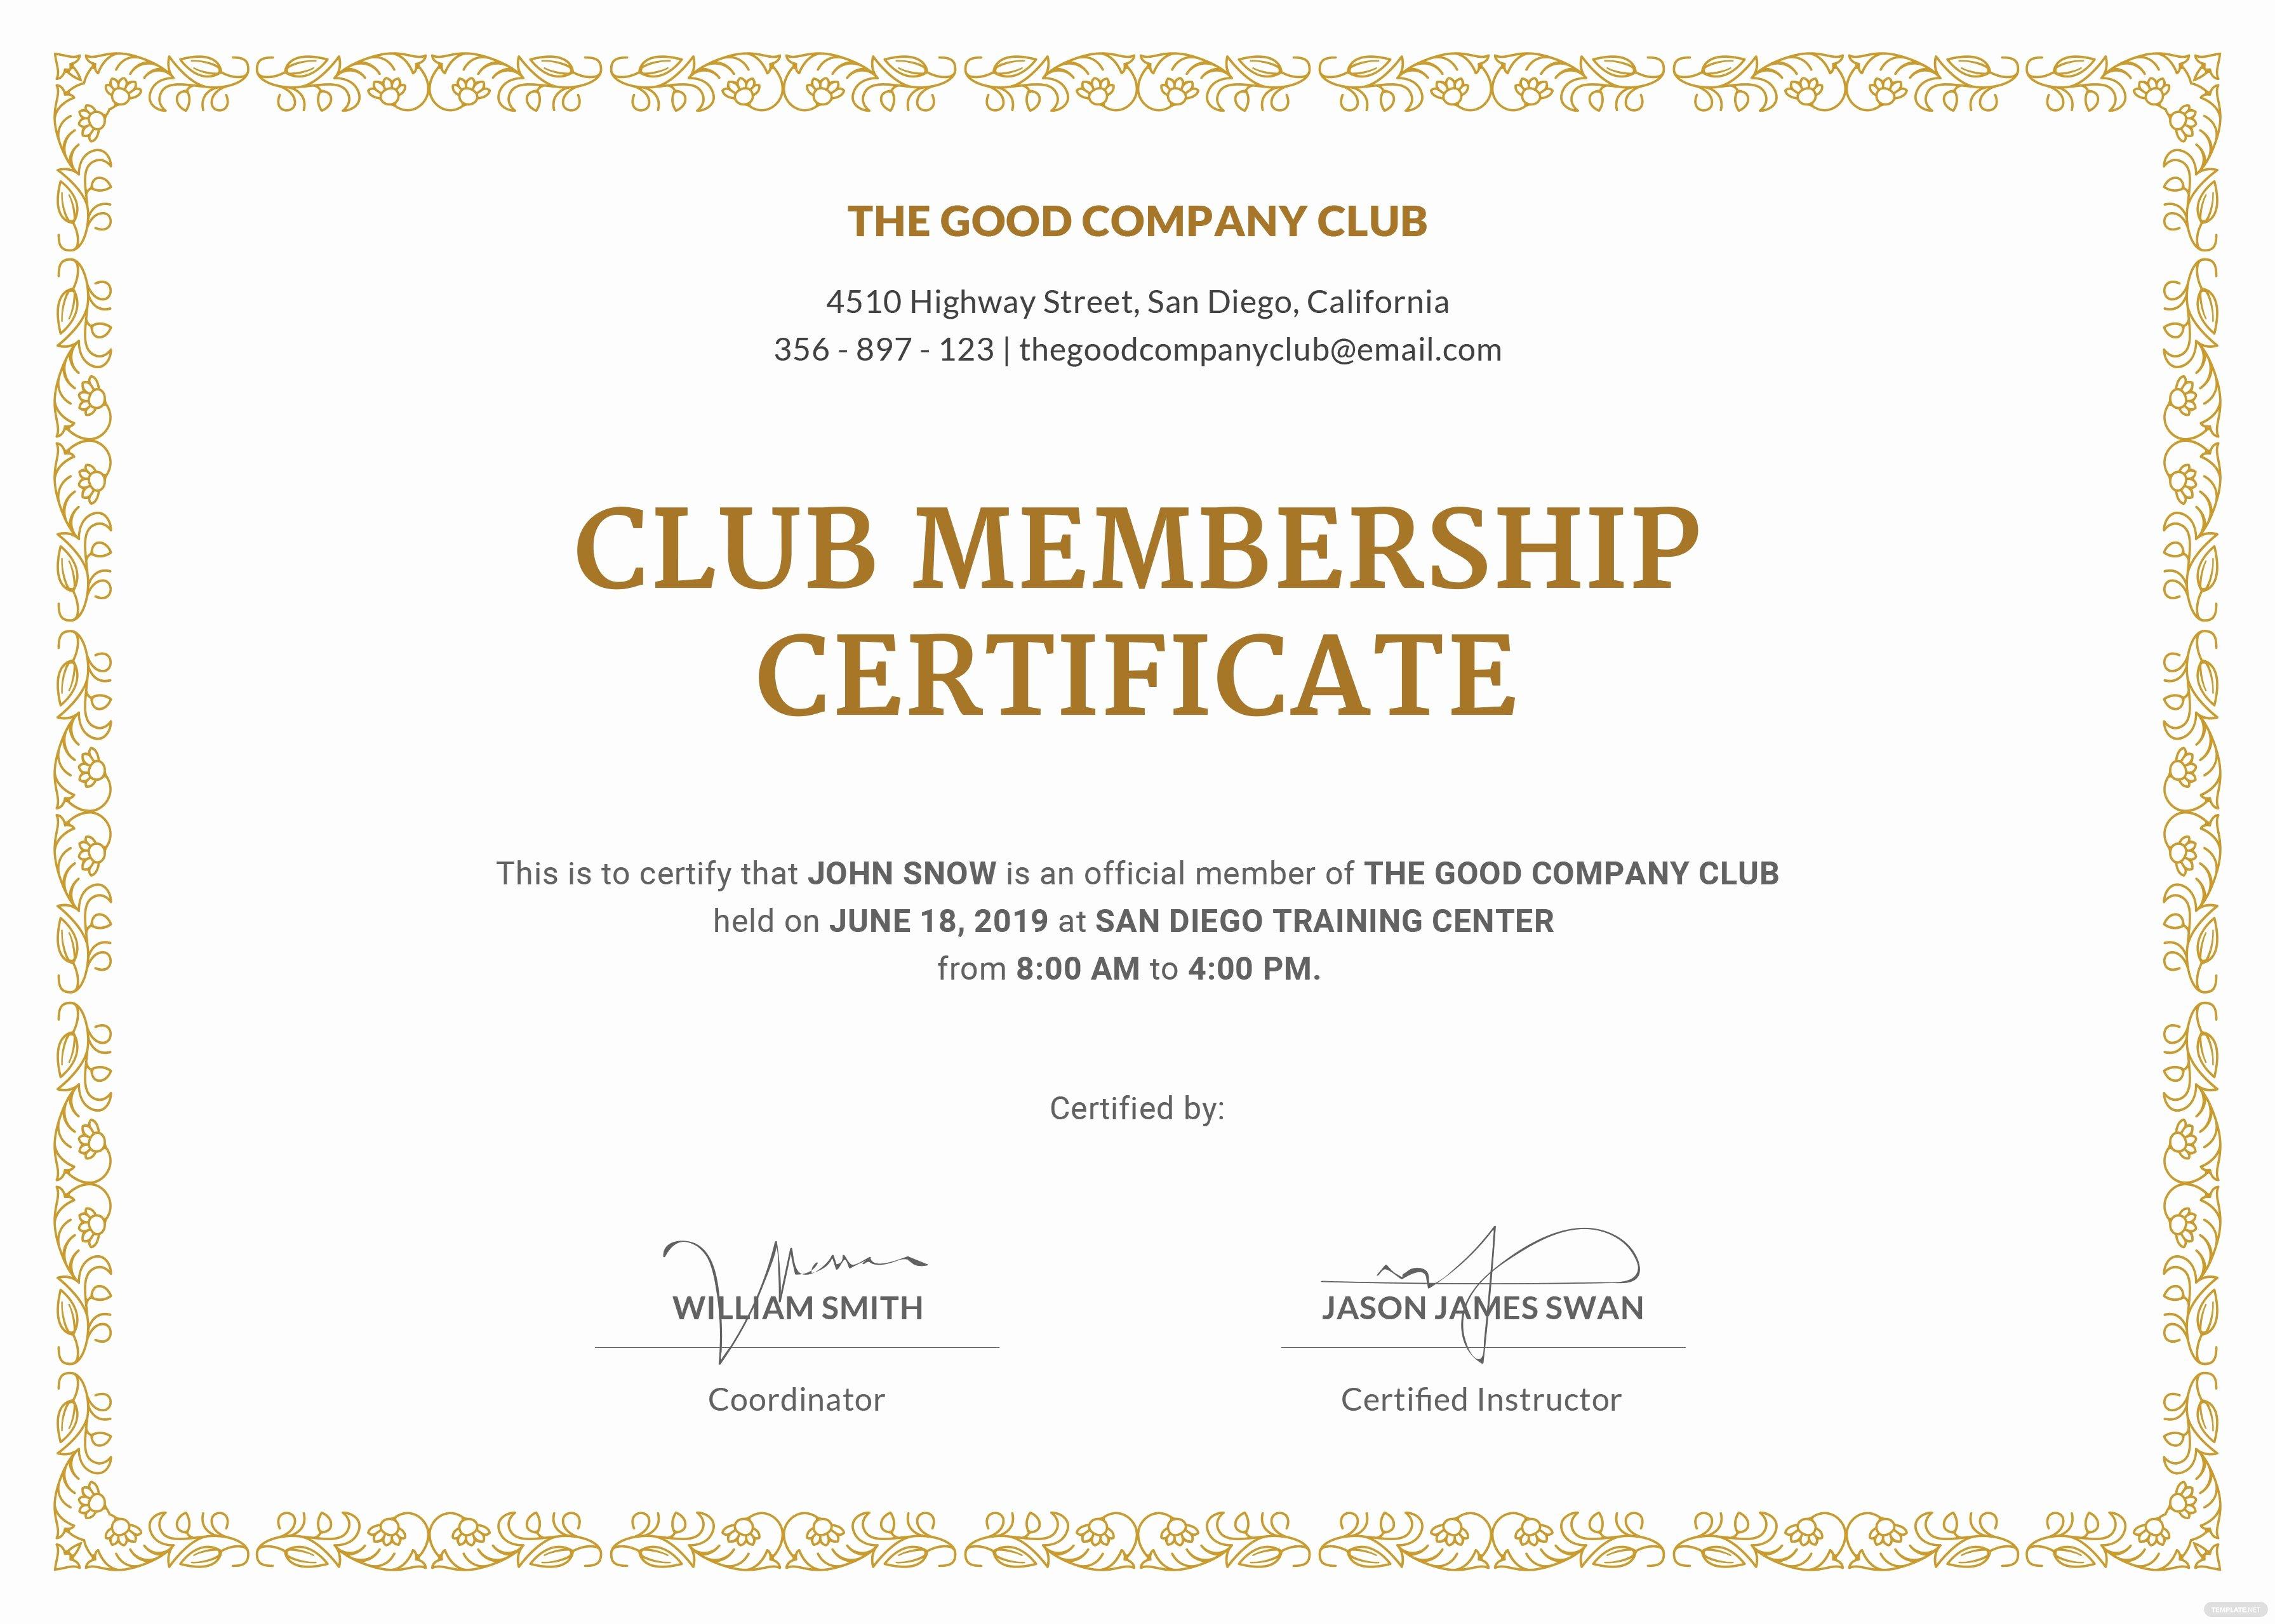 Certificate Of Membership Template Lovely Free Club Membership Certificate Template In Adobe